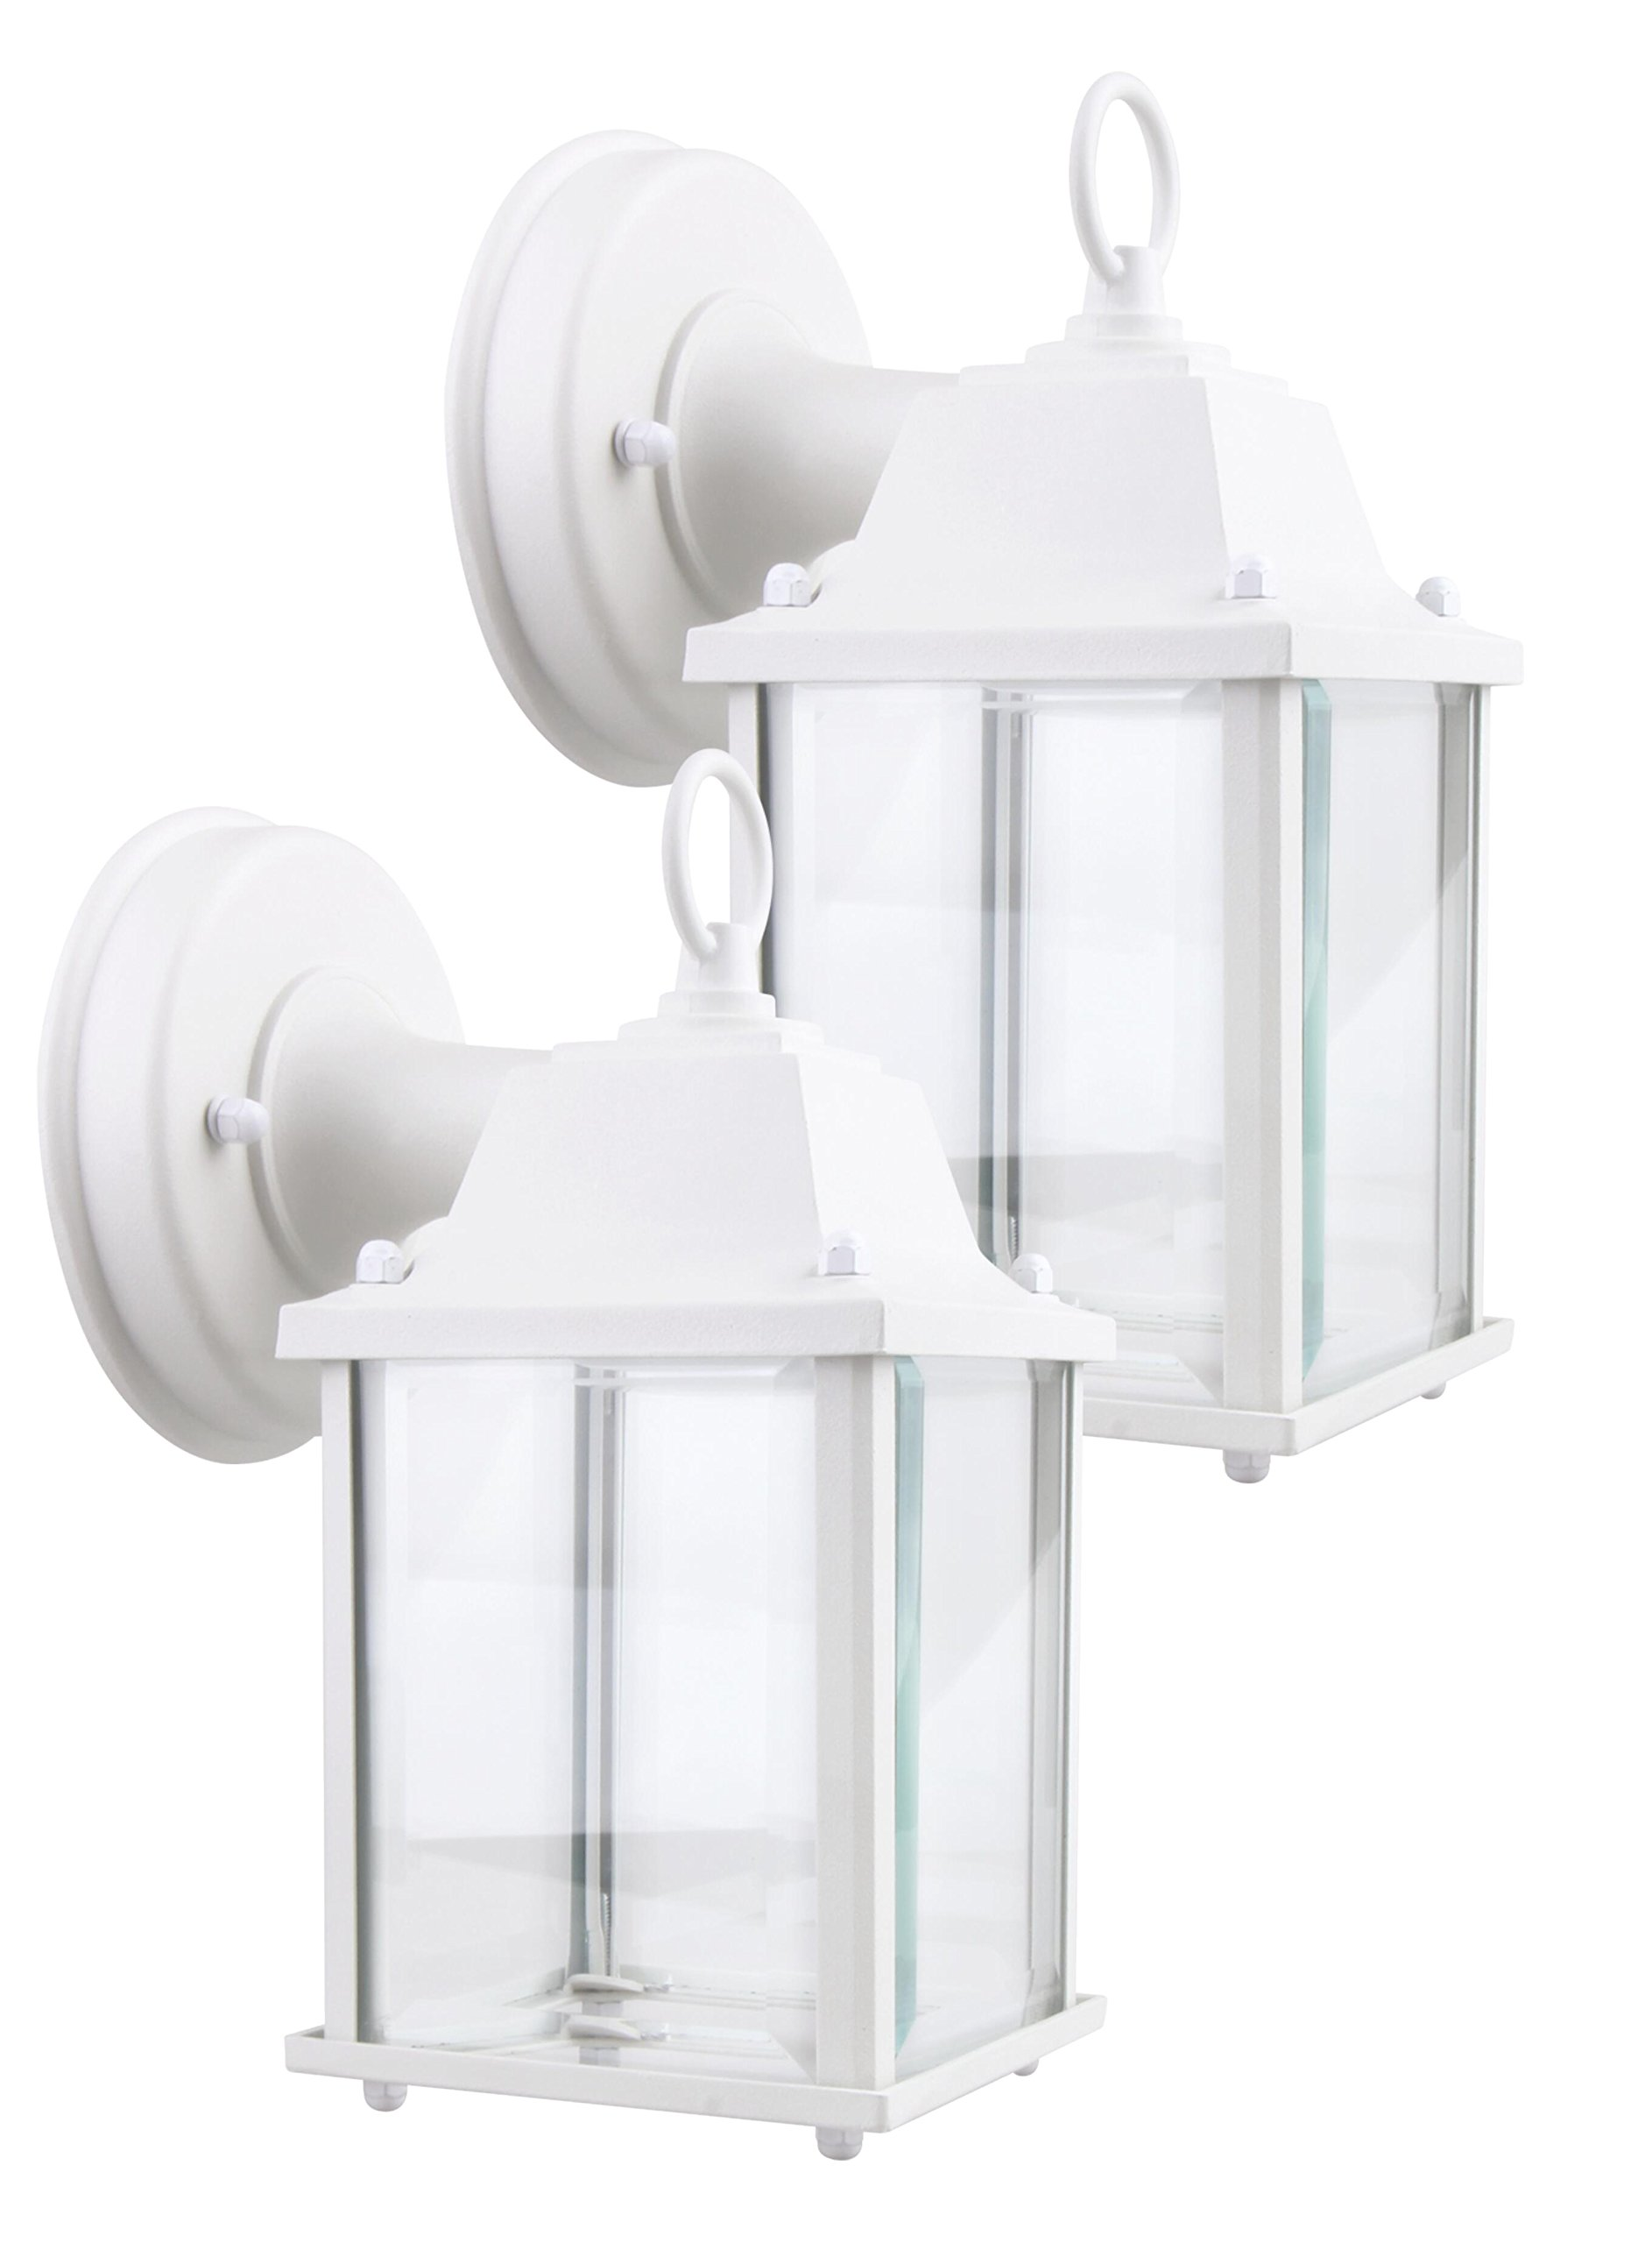 Lit-Path Matte White Outdoor LED Wall Lantern, Wall Sconce as Porch Light, 9.5W (75W Equivalent), 800 Lumen, Aluminum Housing Plus Glass, Water-Proof and Outdoor Rated, ETL and ES Qualified, 2-Pack